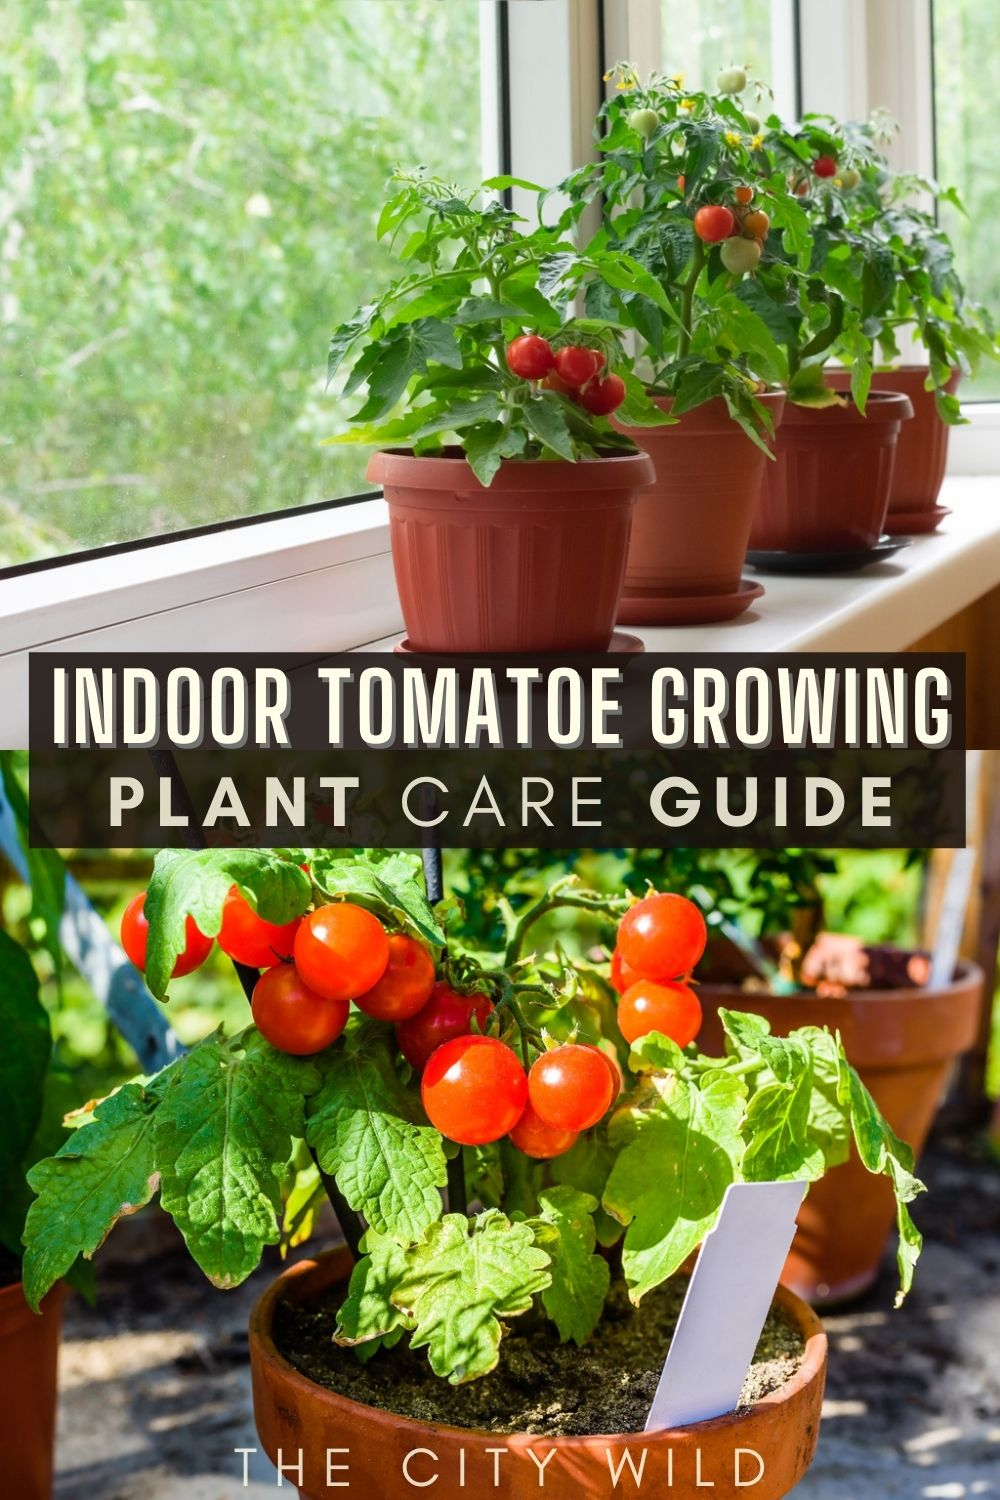 Tomato plant care guide/ Expert Tips for Growing Tomatoes Indoors